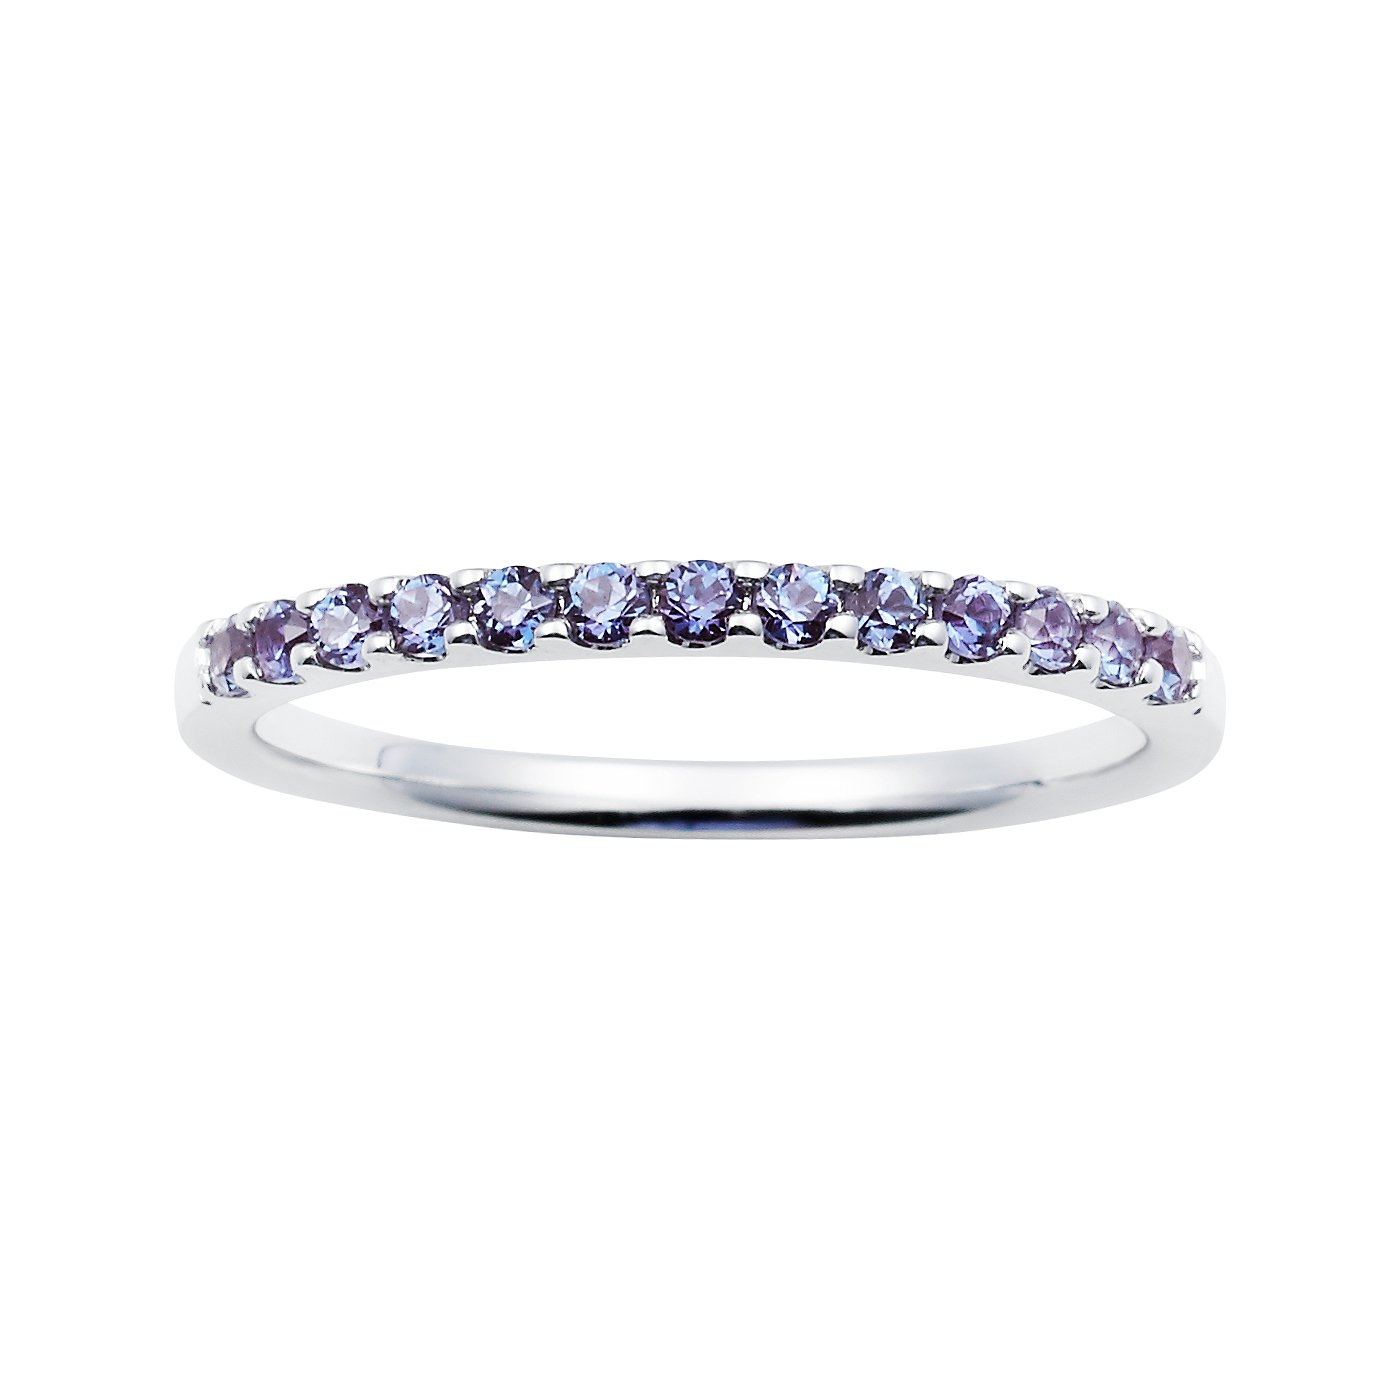 14K White Gold 1/4 Cttw Created Alexandrite Stackable 2MM Wedding Anniversary Band Ring - June Birthstone, Size 5.5